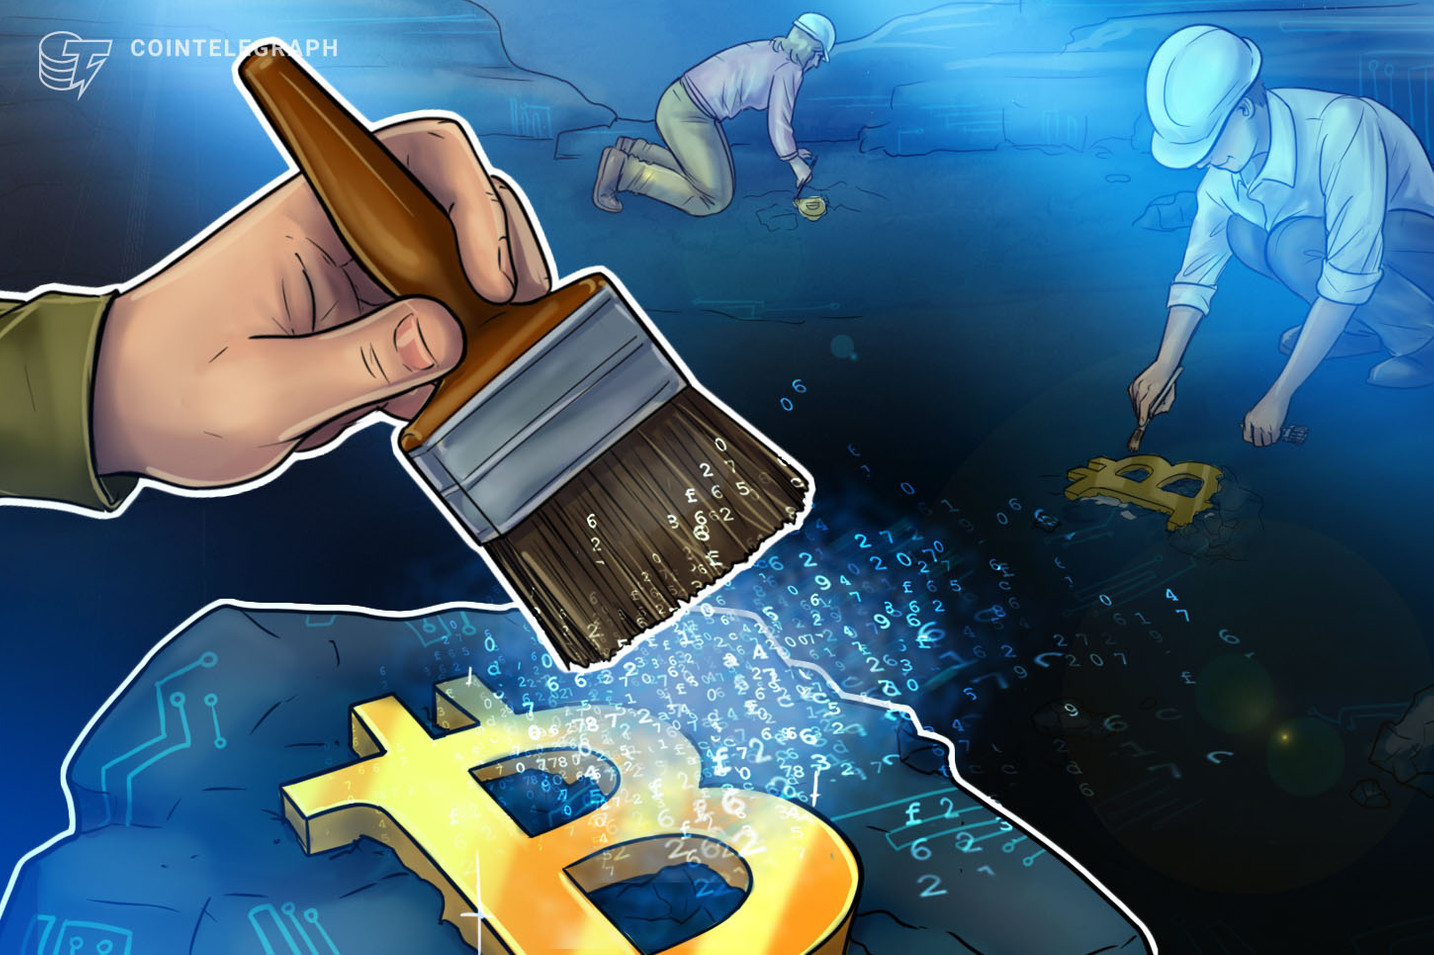 Oldest Bitcoin mining pool 'immortalizes' bullish Reuters headline